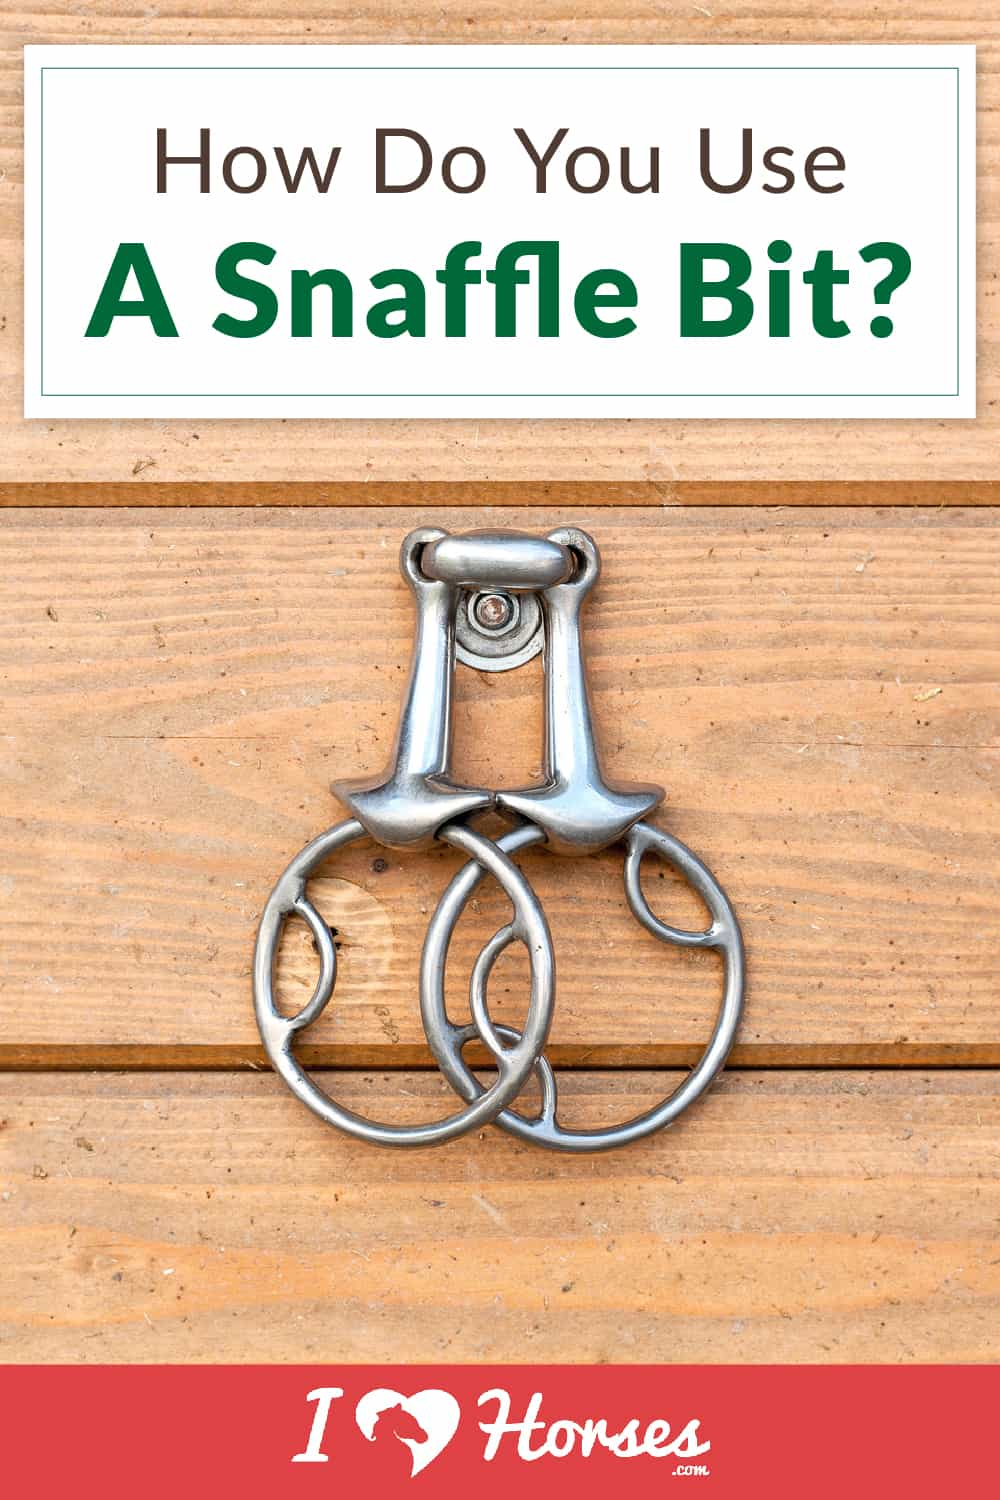 What Is A Snaffle Bit And How Does It Work-02-01